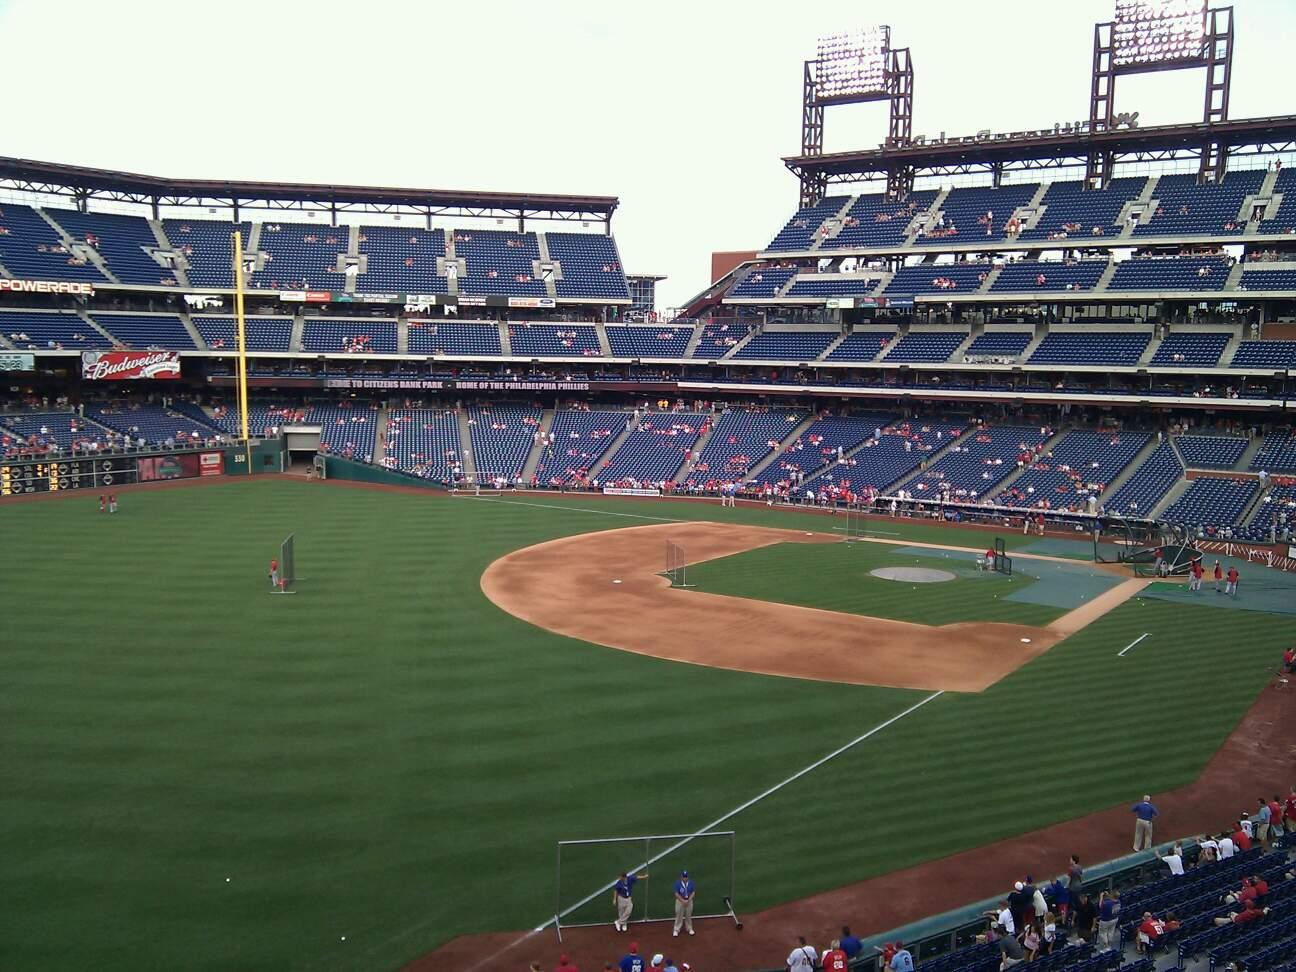 Citizens Bank Park Section 236 Row 3 Seat 3